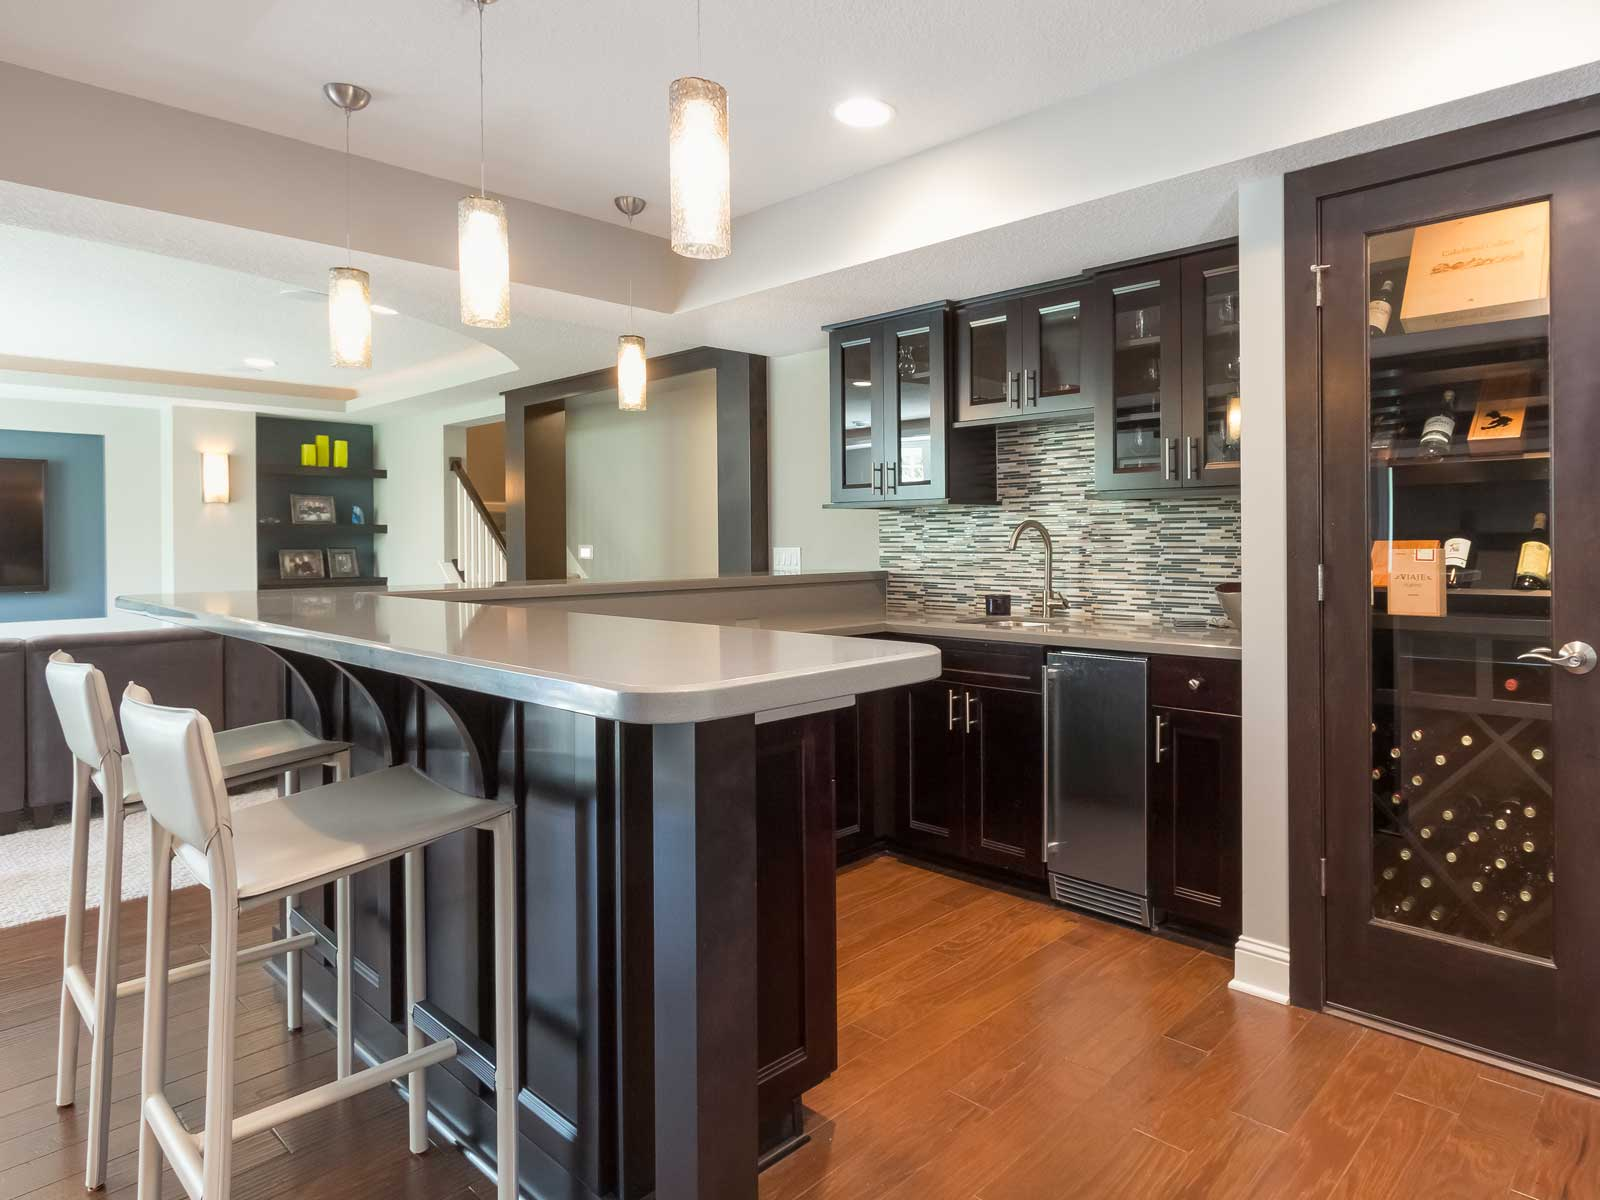 Great Renovation Ideas For Your Kitchen And Basement Tgnsync